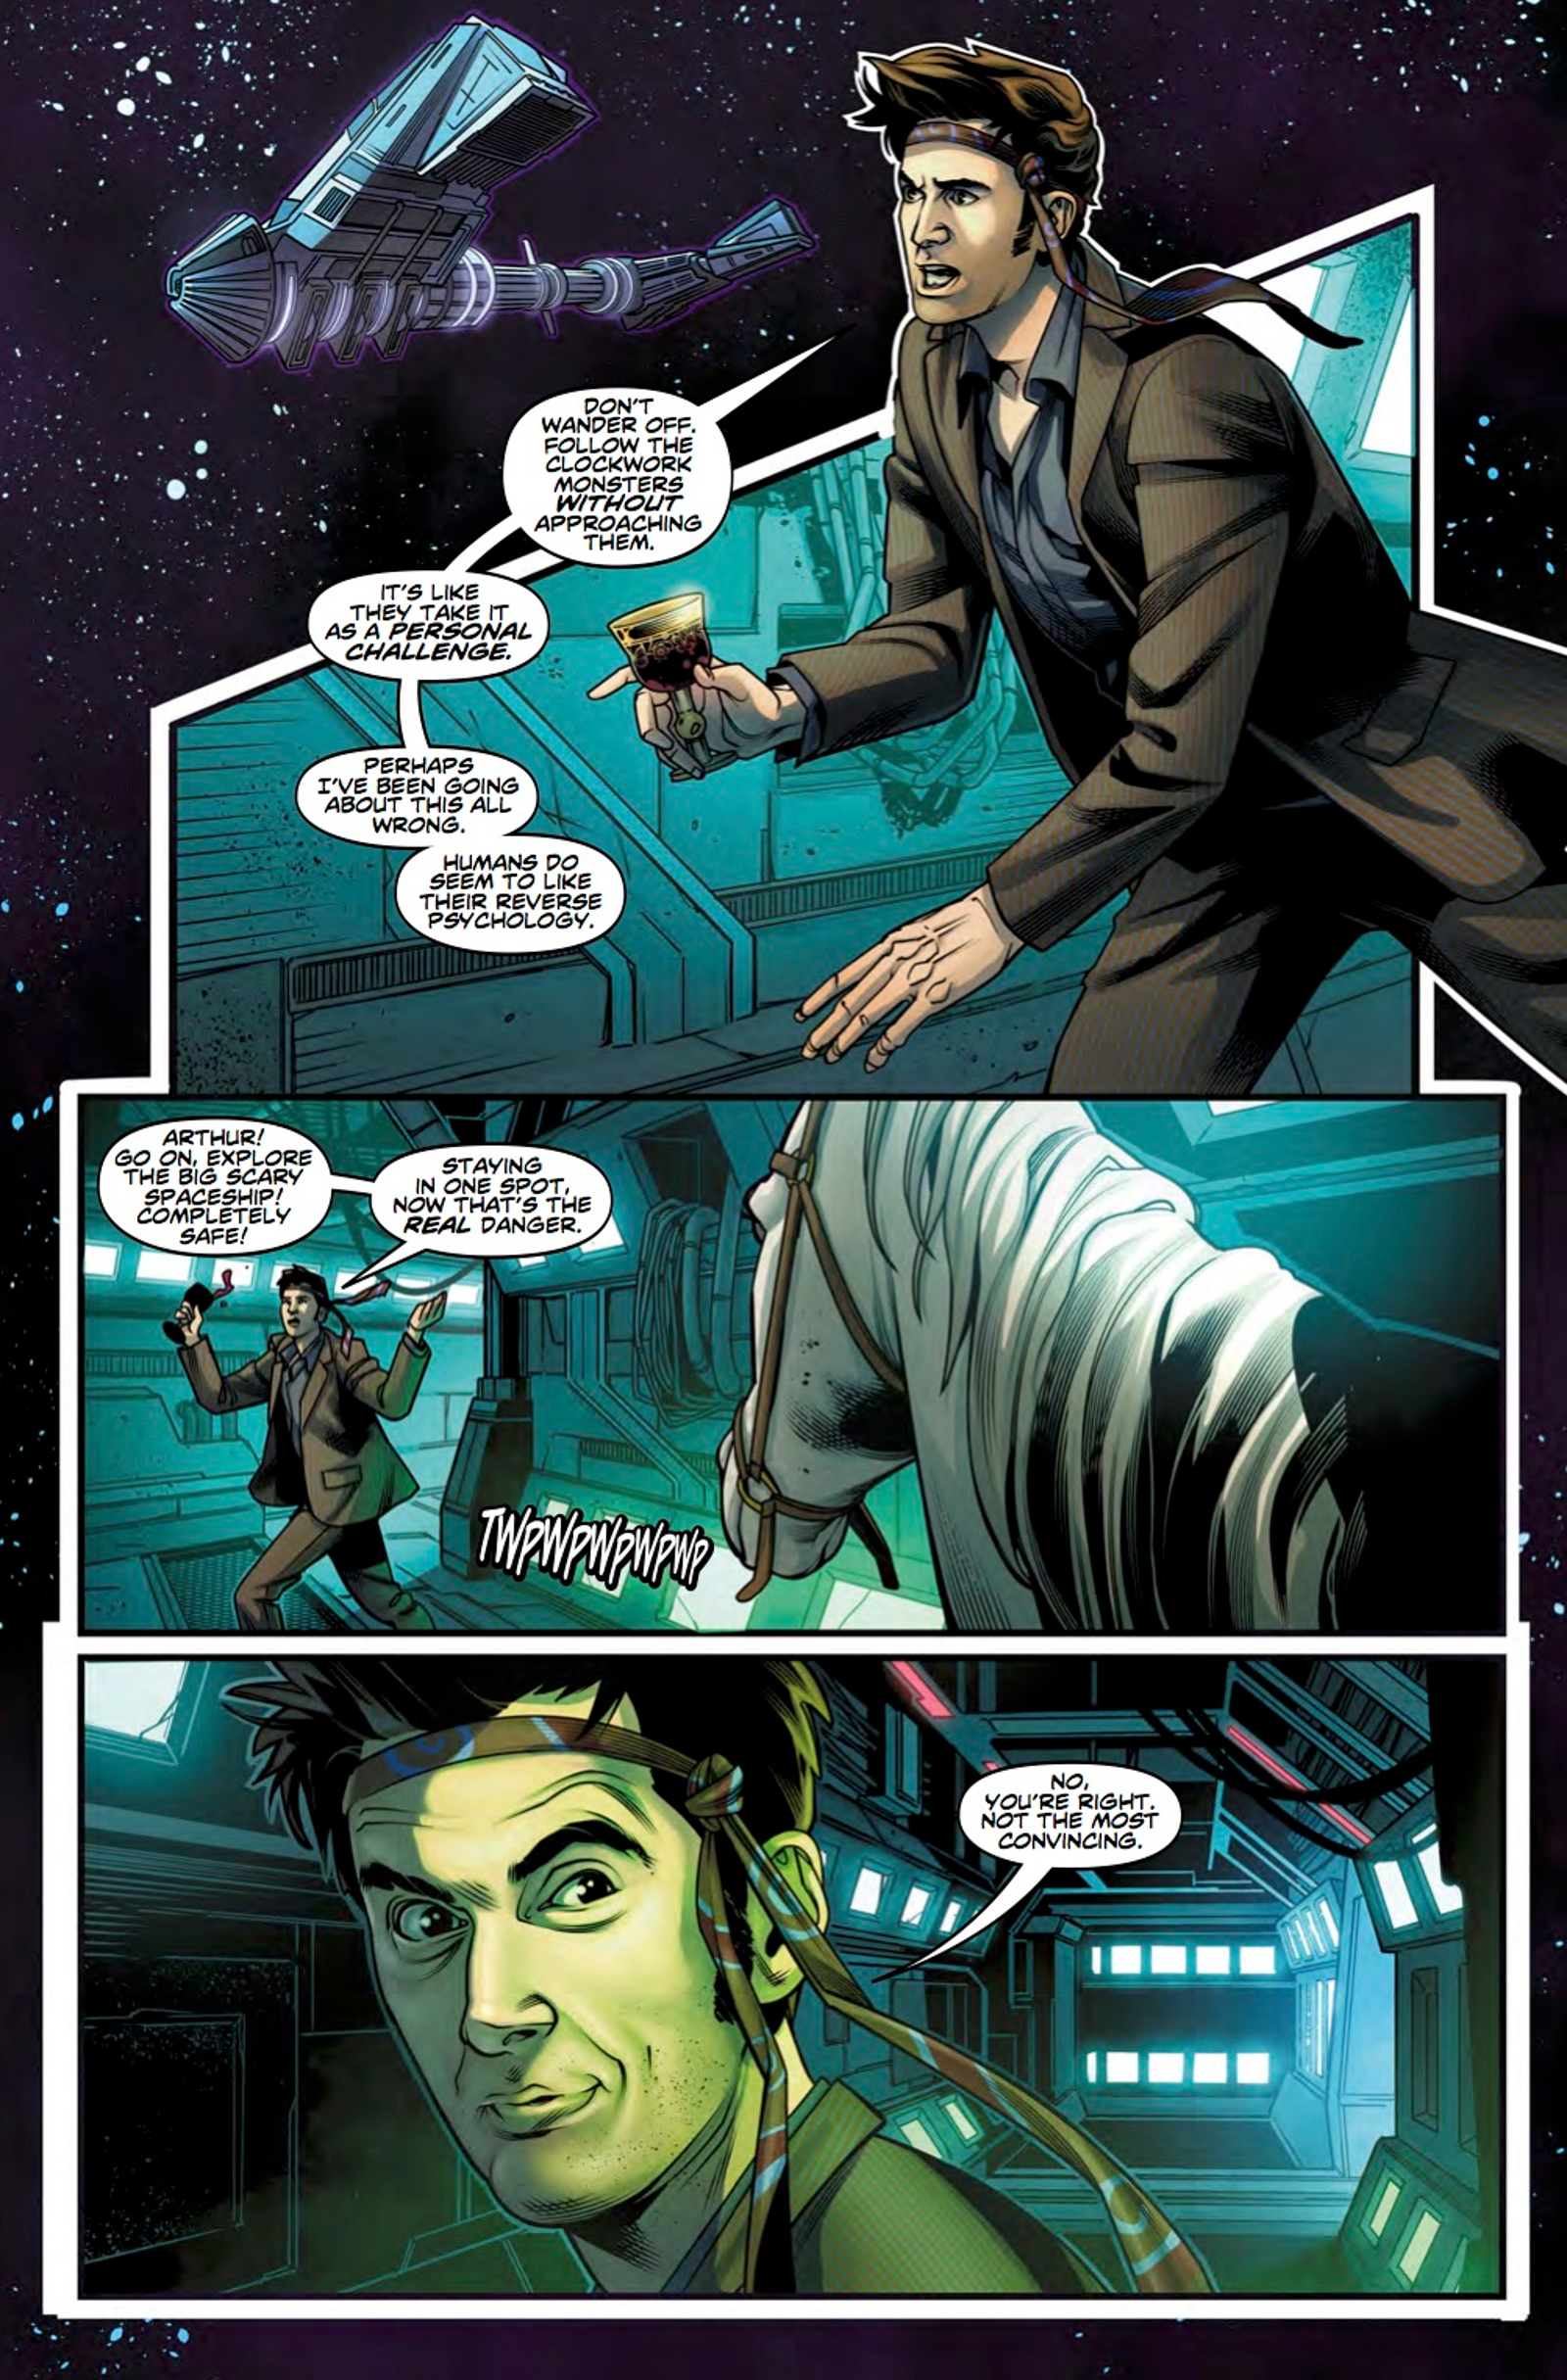 How The Road to the Thirteenth Doctor connects to The Thirteenth Doctor #1. Words by Jody Houser, art by Rachael Stott and Enrica Angiolini